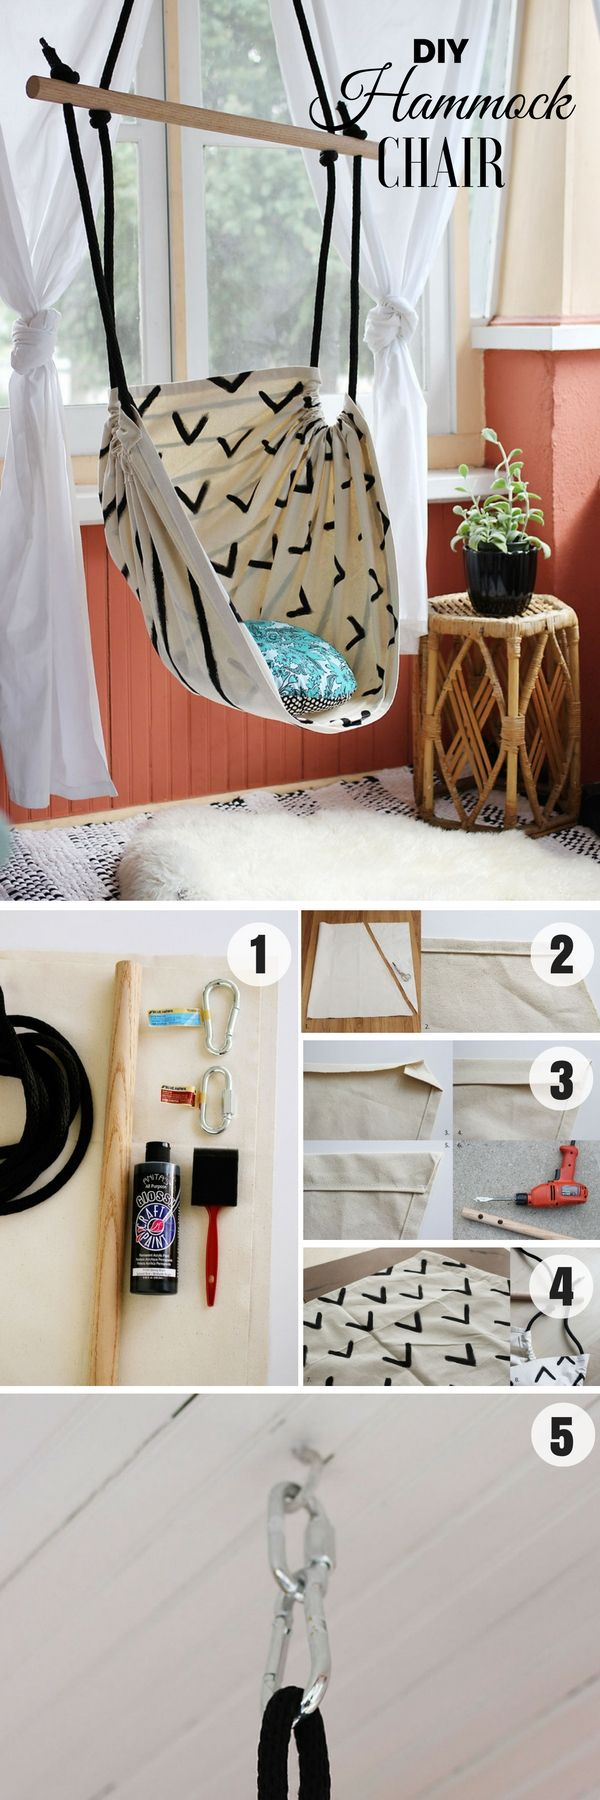 Homemade Decoration Ideas For Magnificent Homemade Bedroom Decor